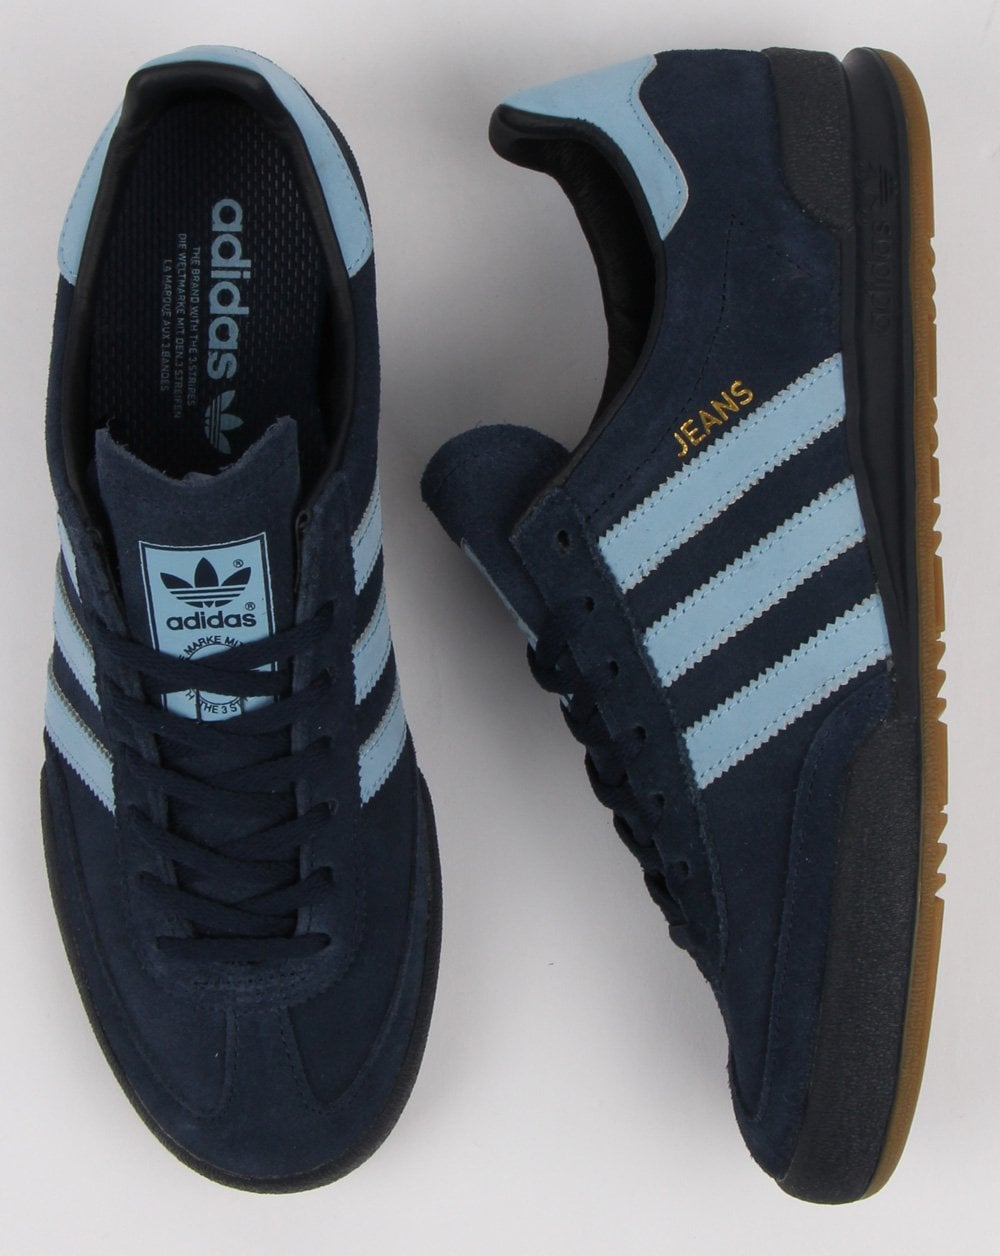 adidas jeans trainer